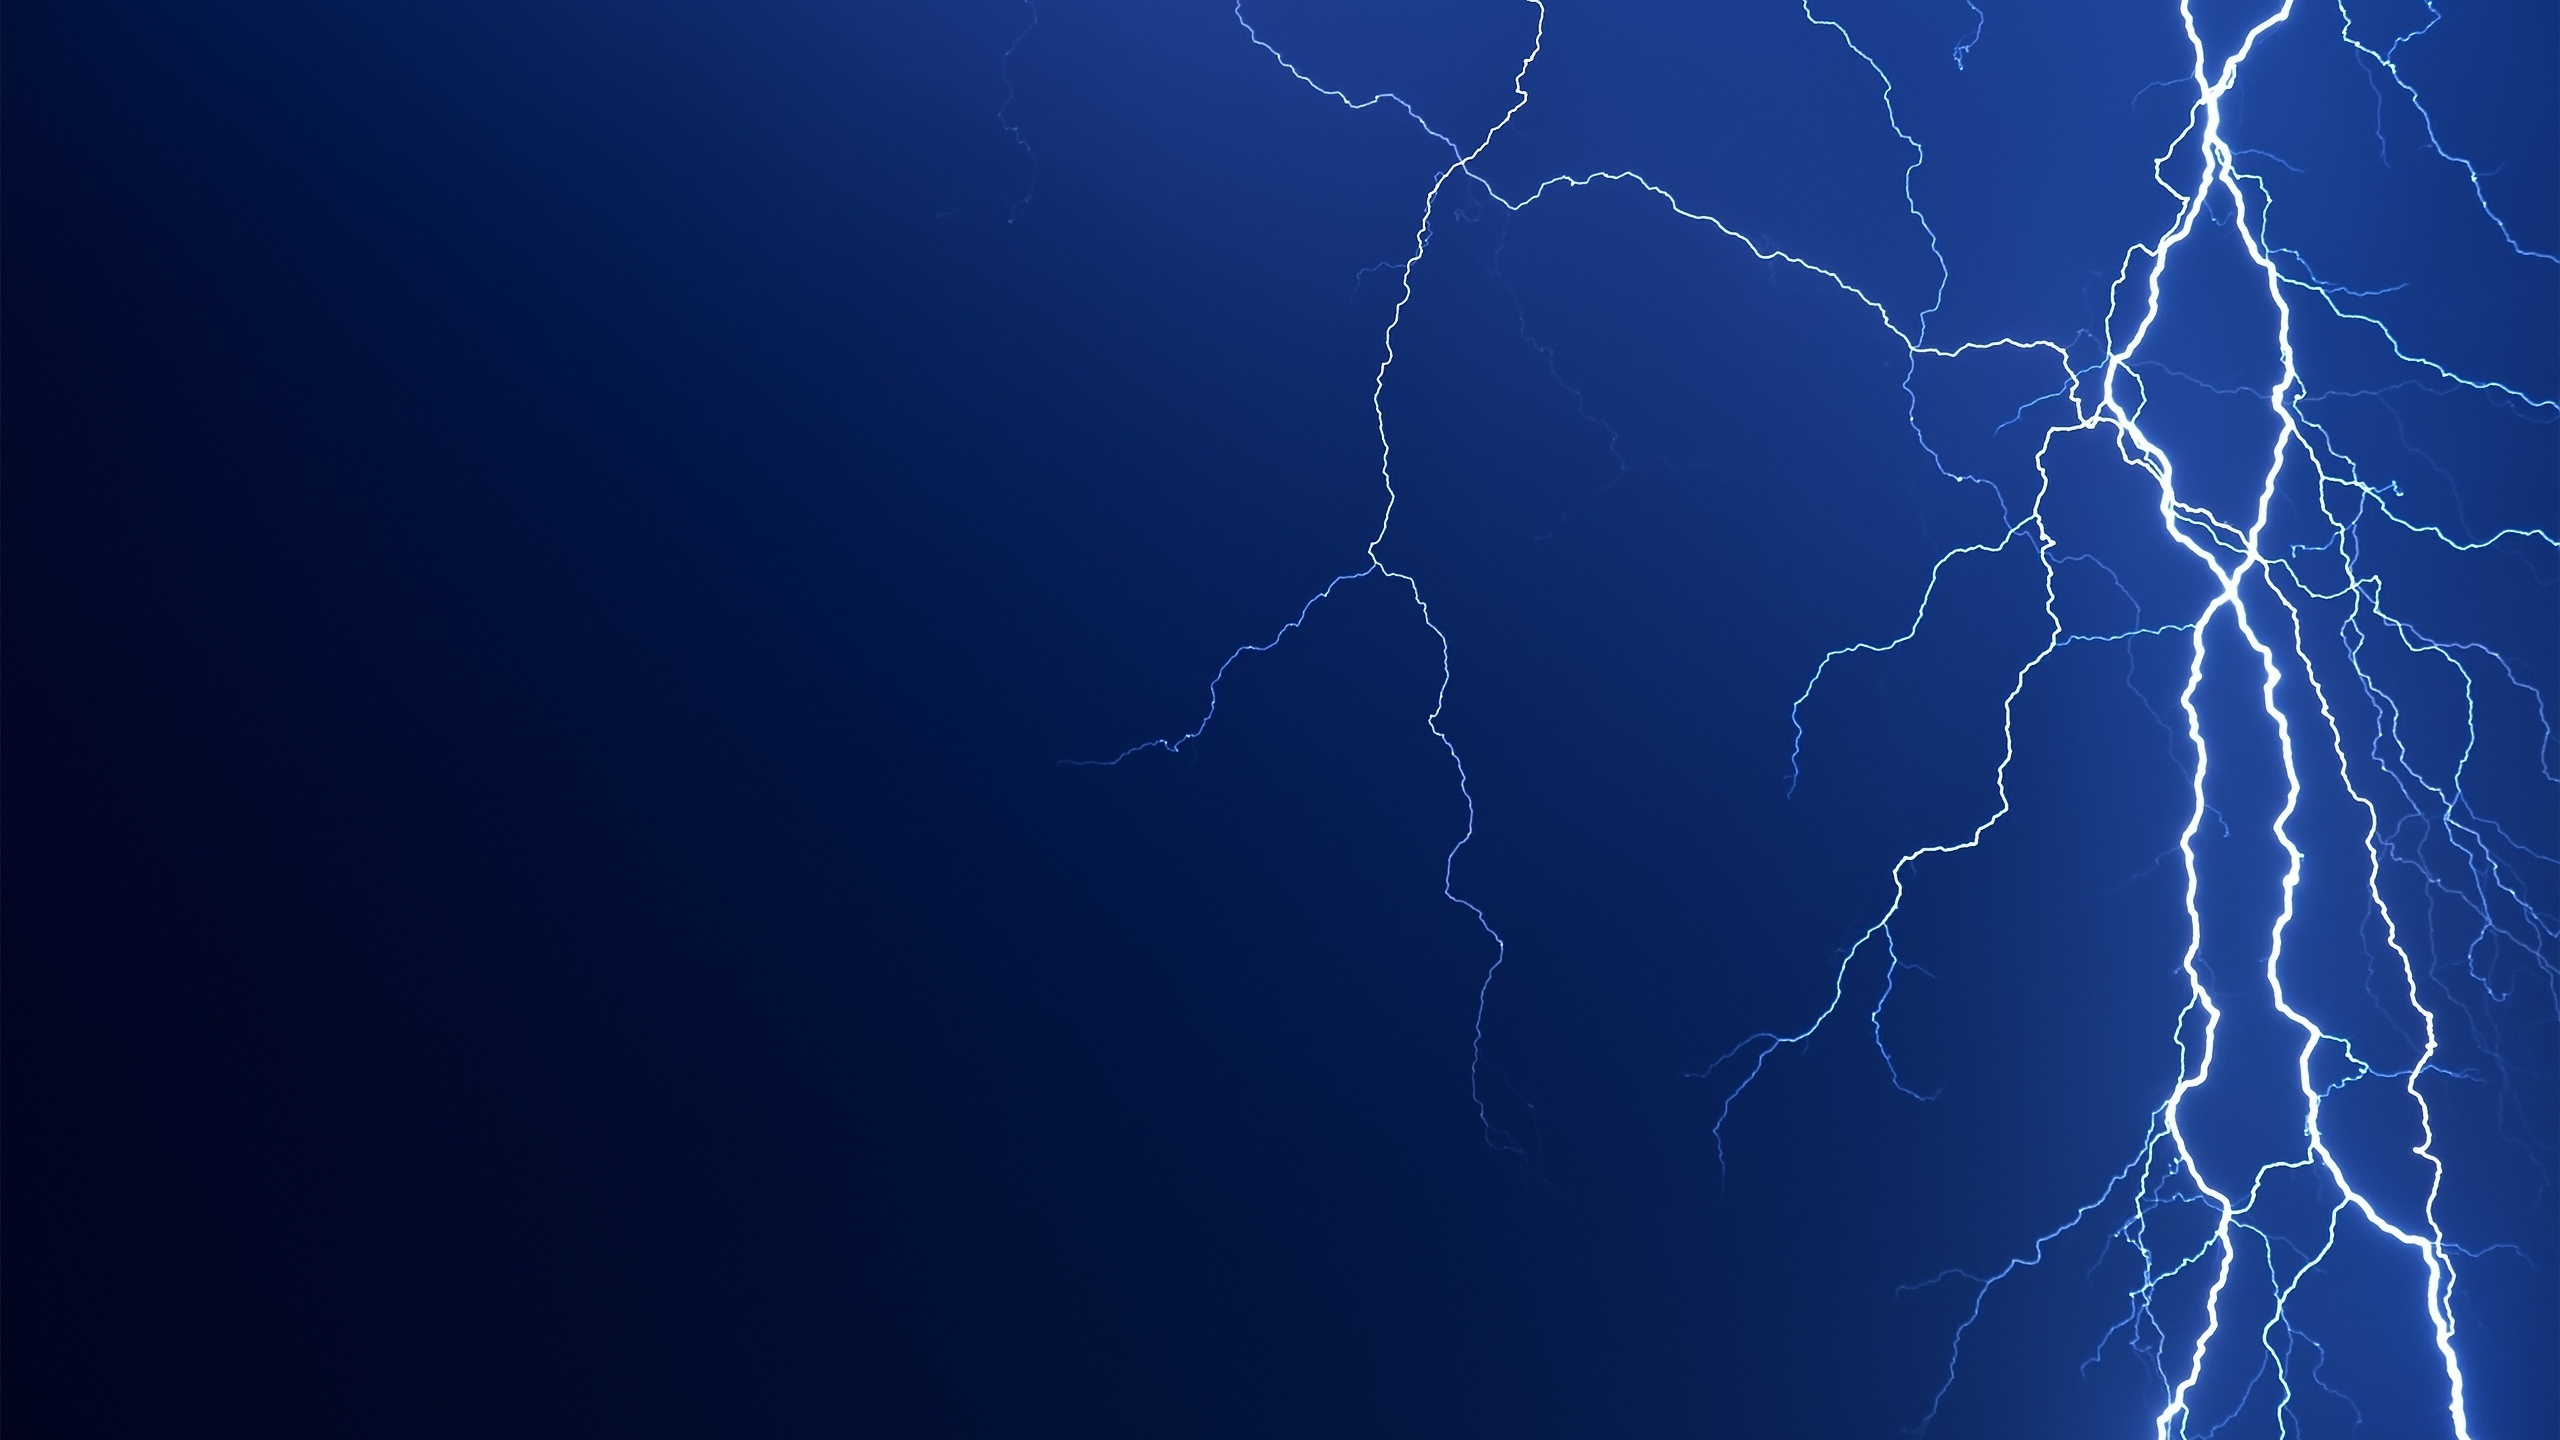 2560x1440 Lightning bolt desktop PC and Mac wallpaper 2560x1440